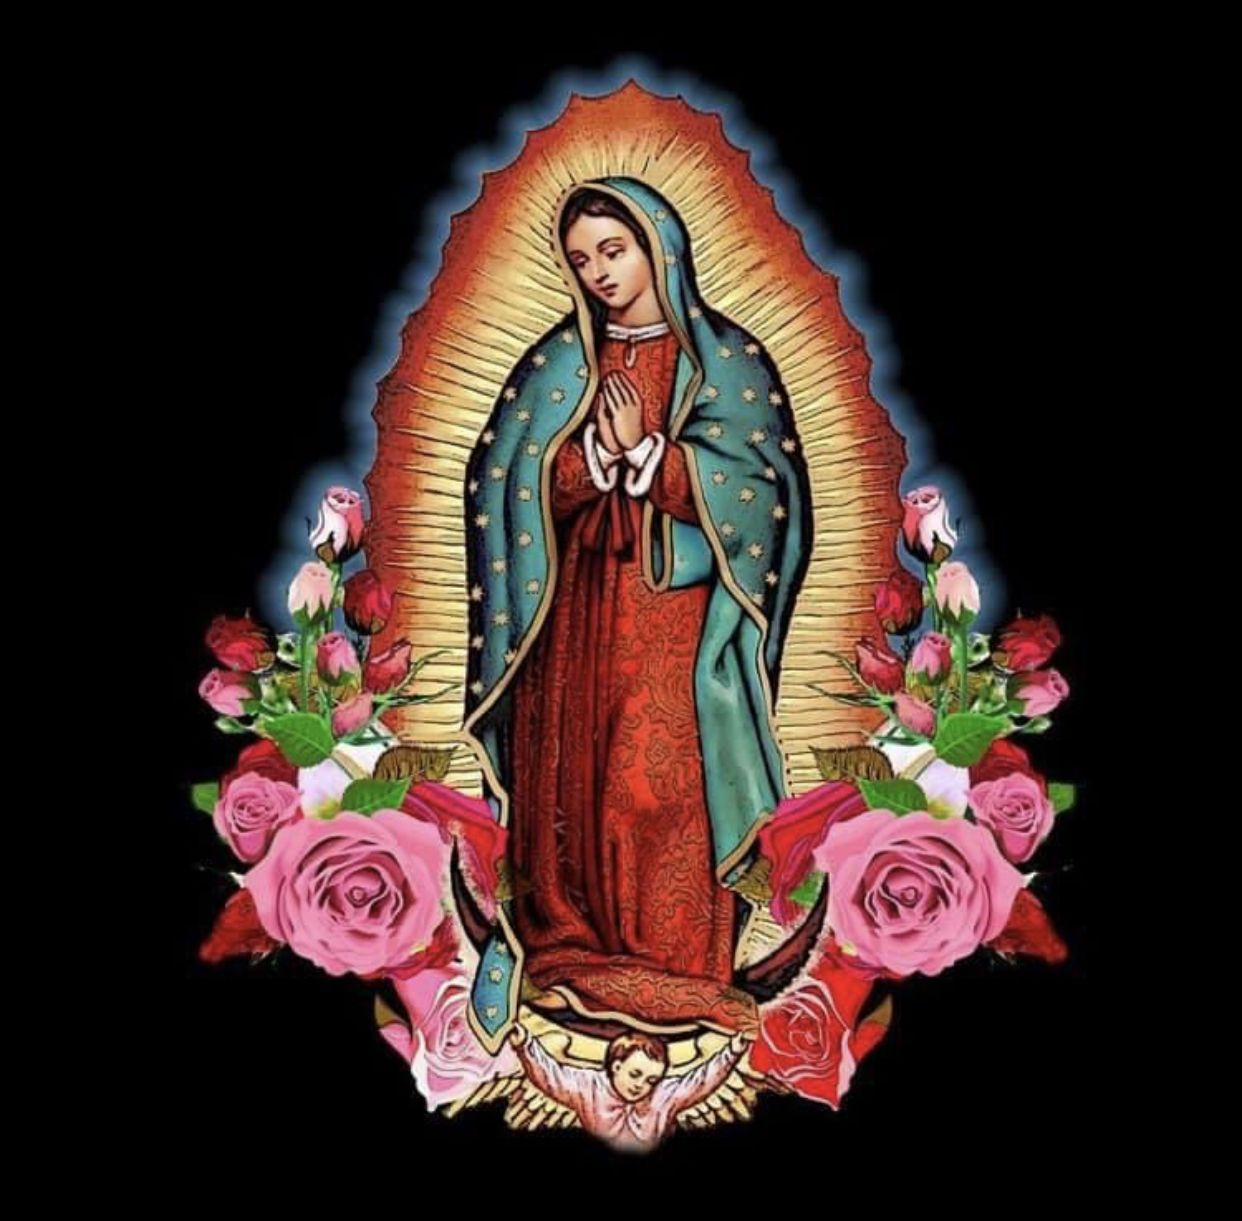 Pintrippybrian14 On Tacuachiando | Virgin Mary Art In Most Current Blended Fabric Our Lady Of Guadalupe Wall Hangings (View 18 of 20)